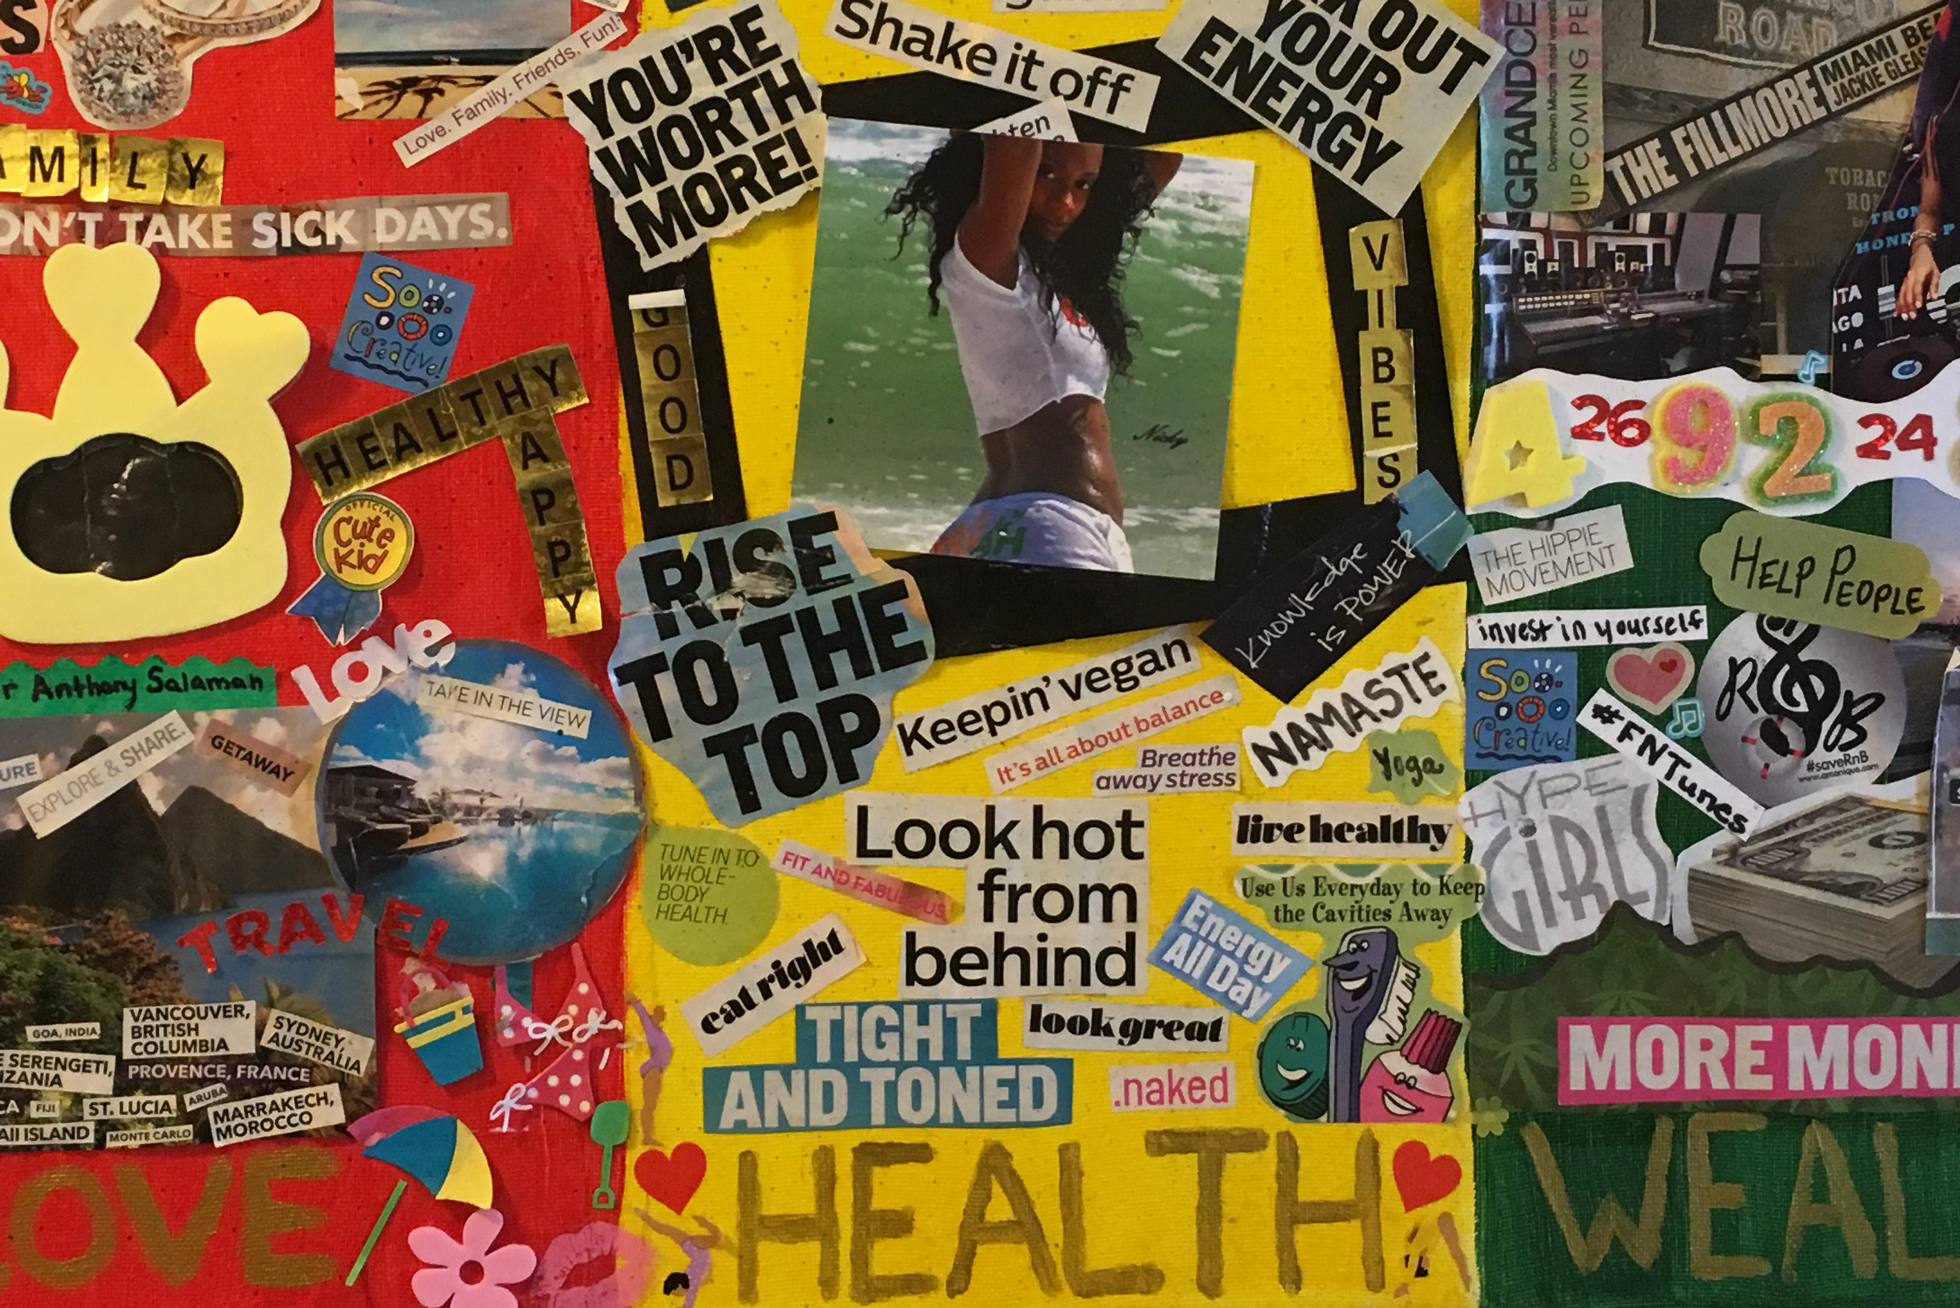 Reggae-themed inspiration board with motivational messages